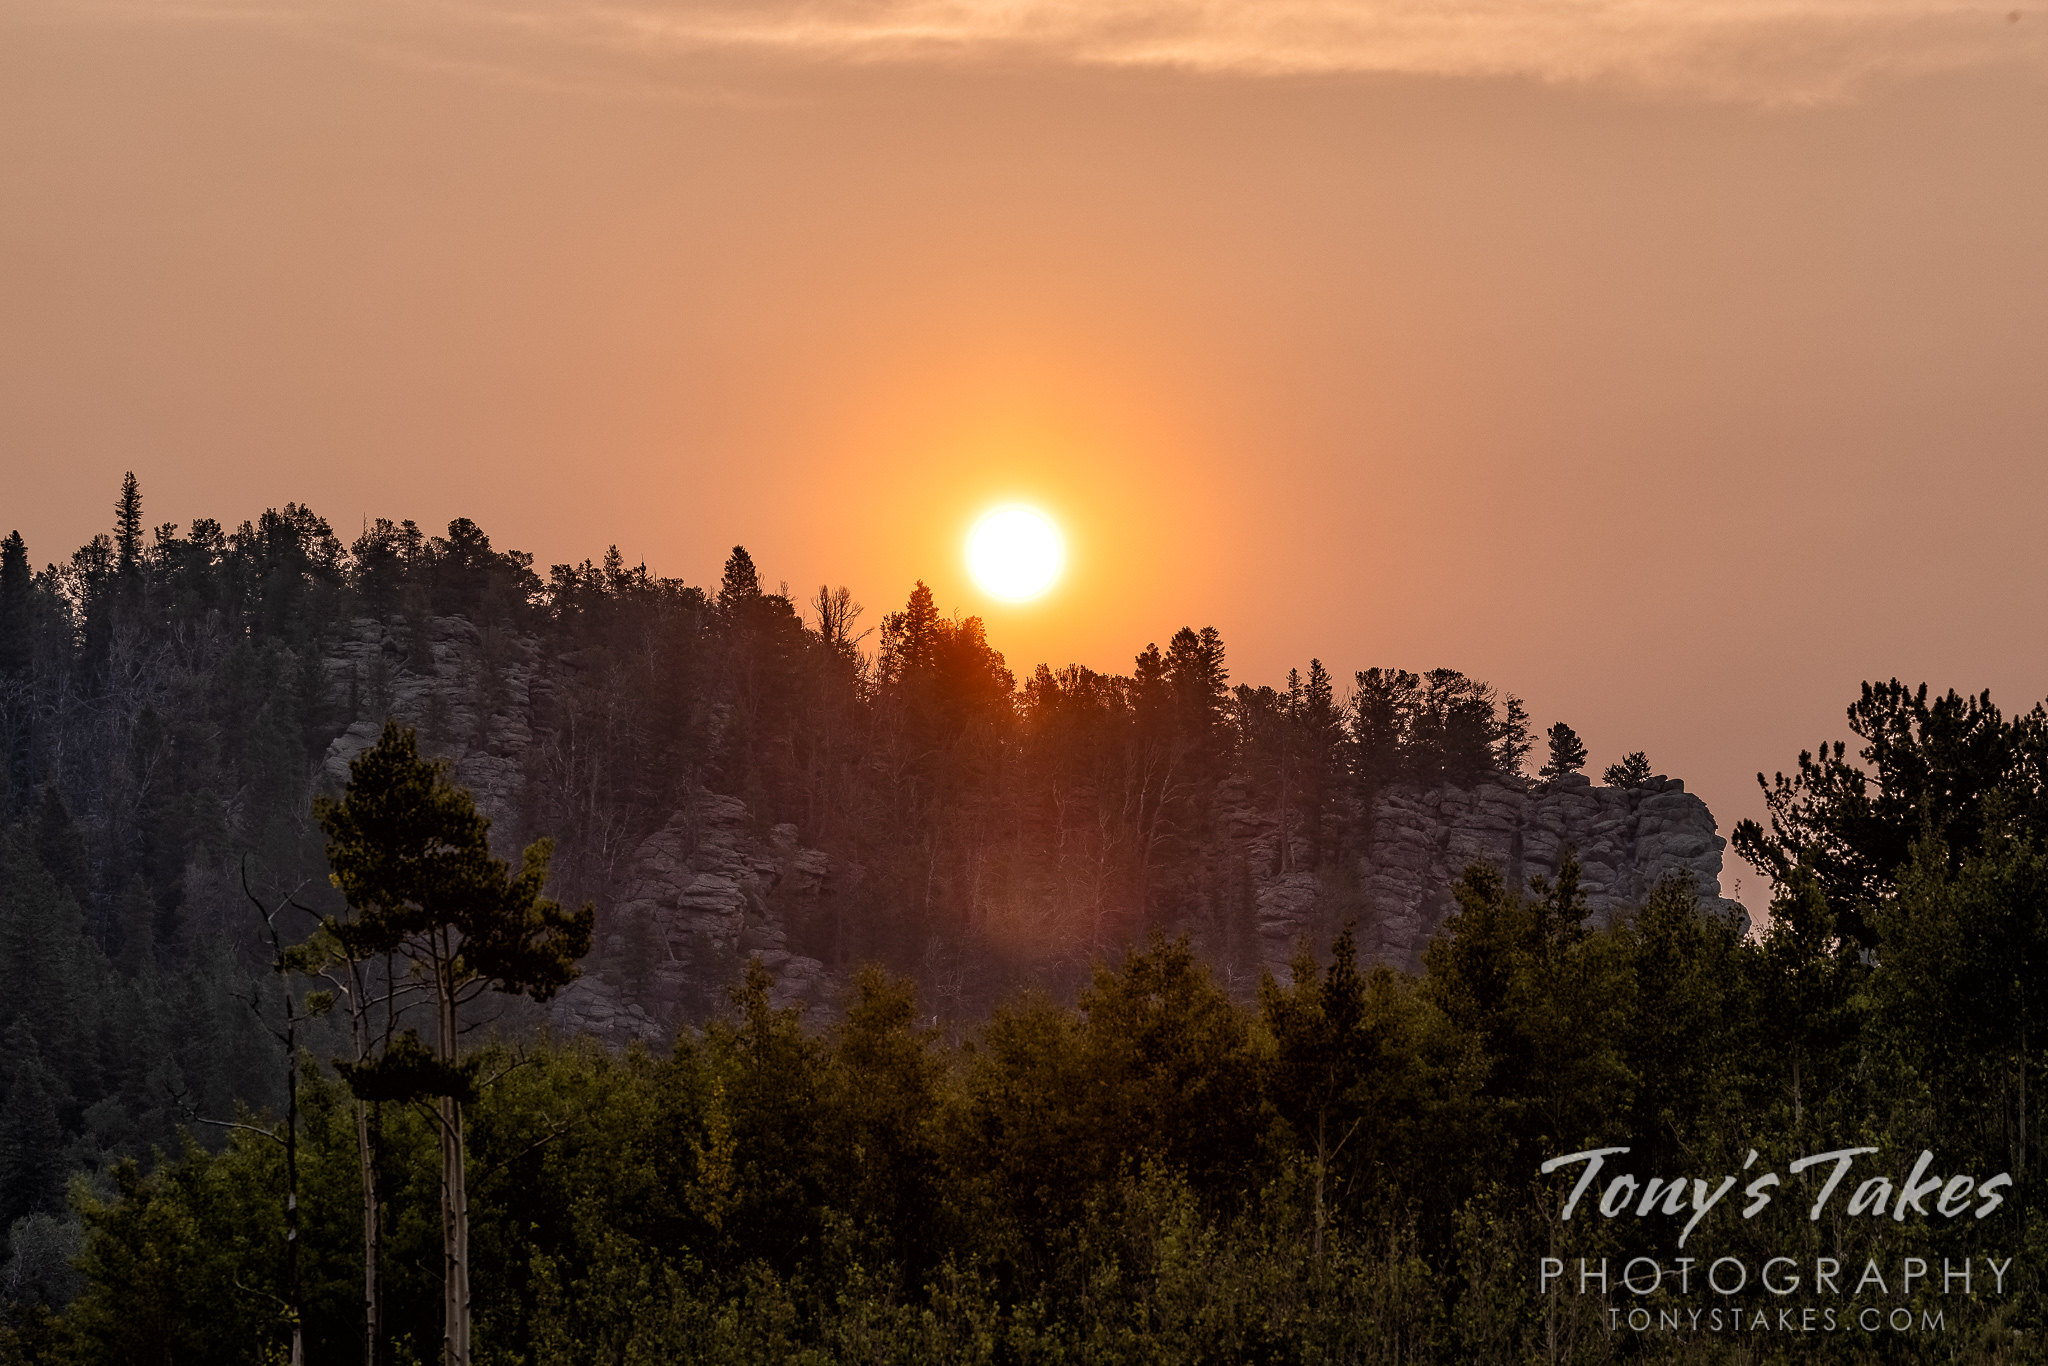 Smoky sunrise over a rocky landscape